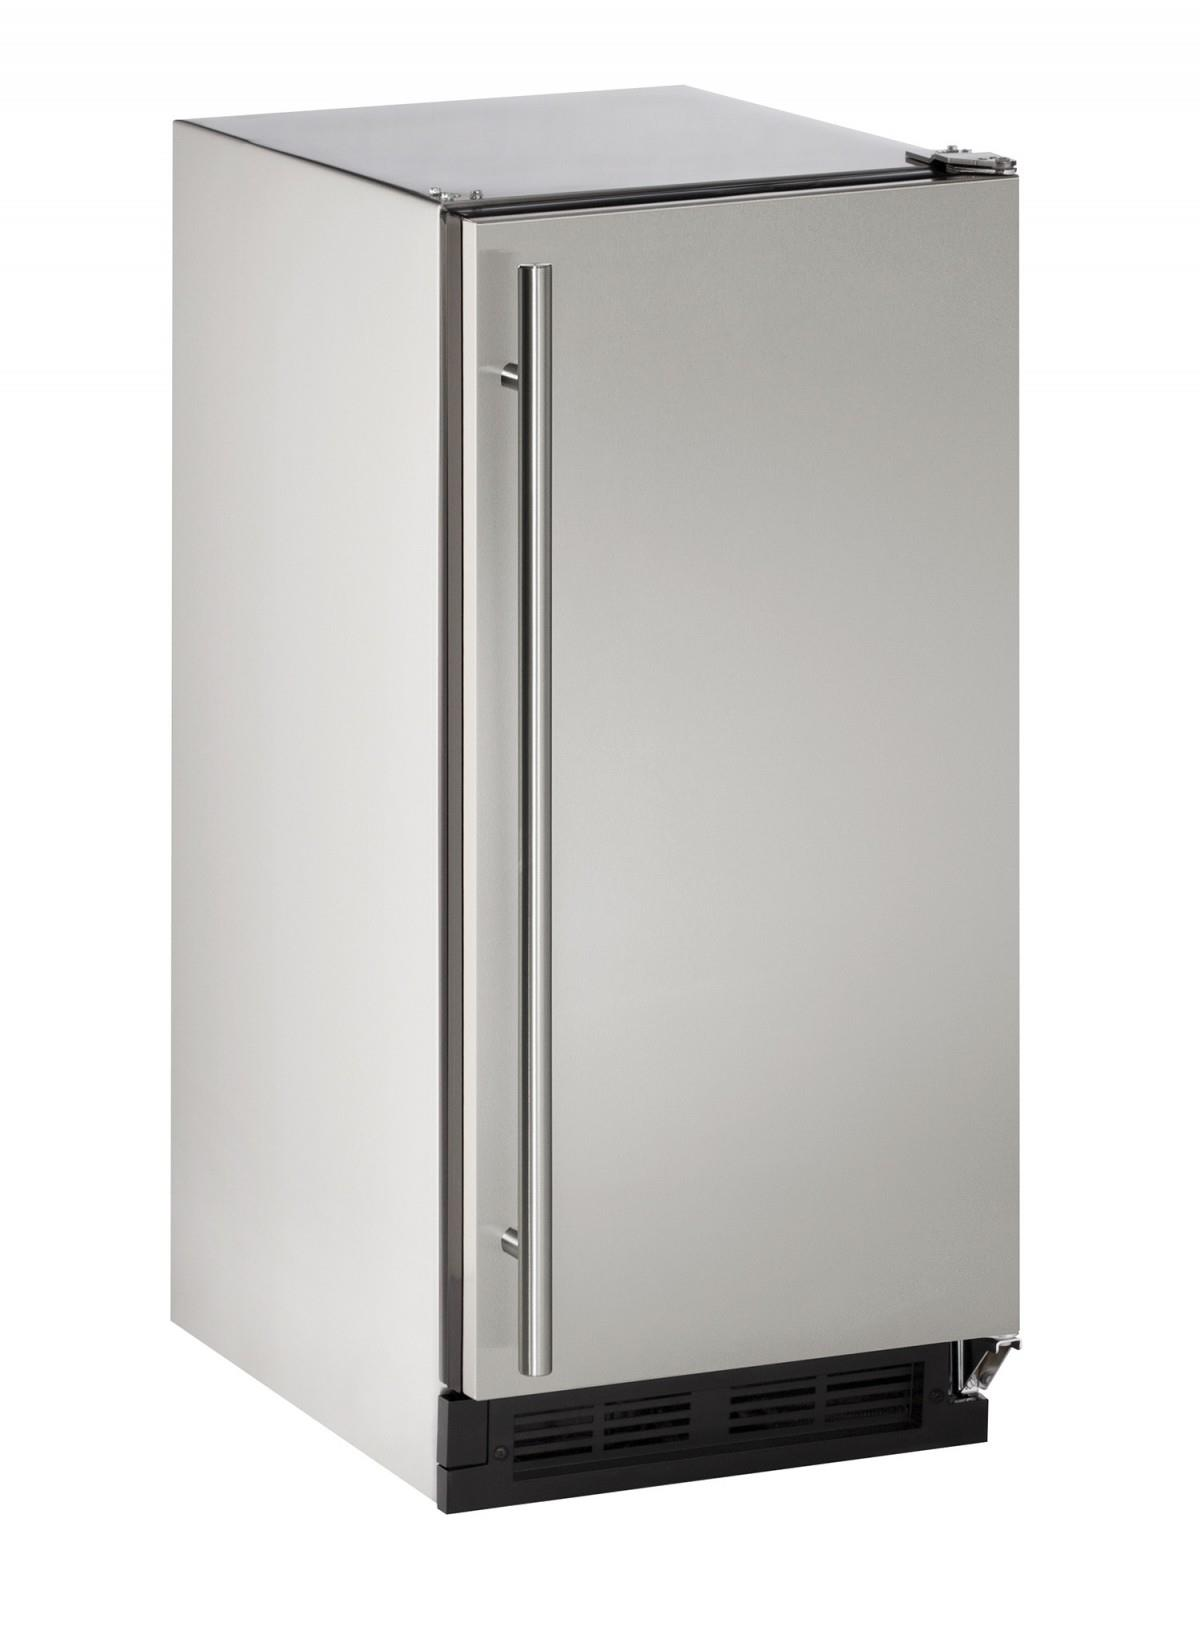 "U-Line Ice Maker 15"" Outdoor Clear Cube Ice Maker - Item Number: U-CLR1215SOD-00A"